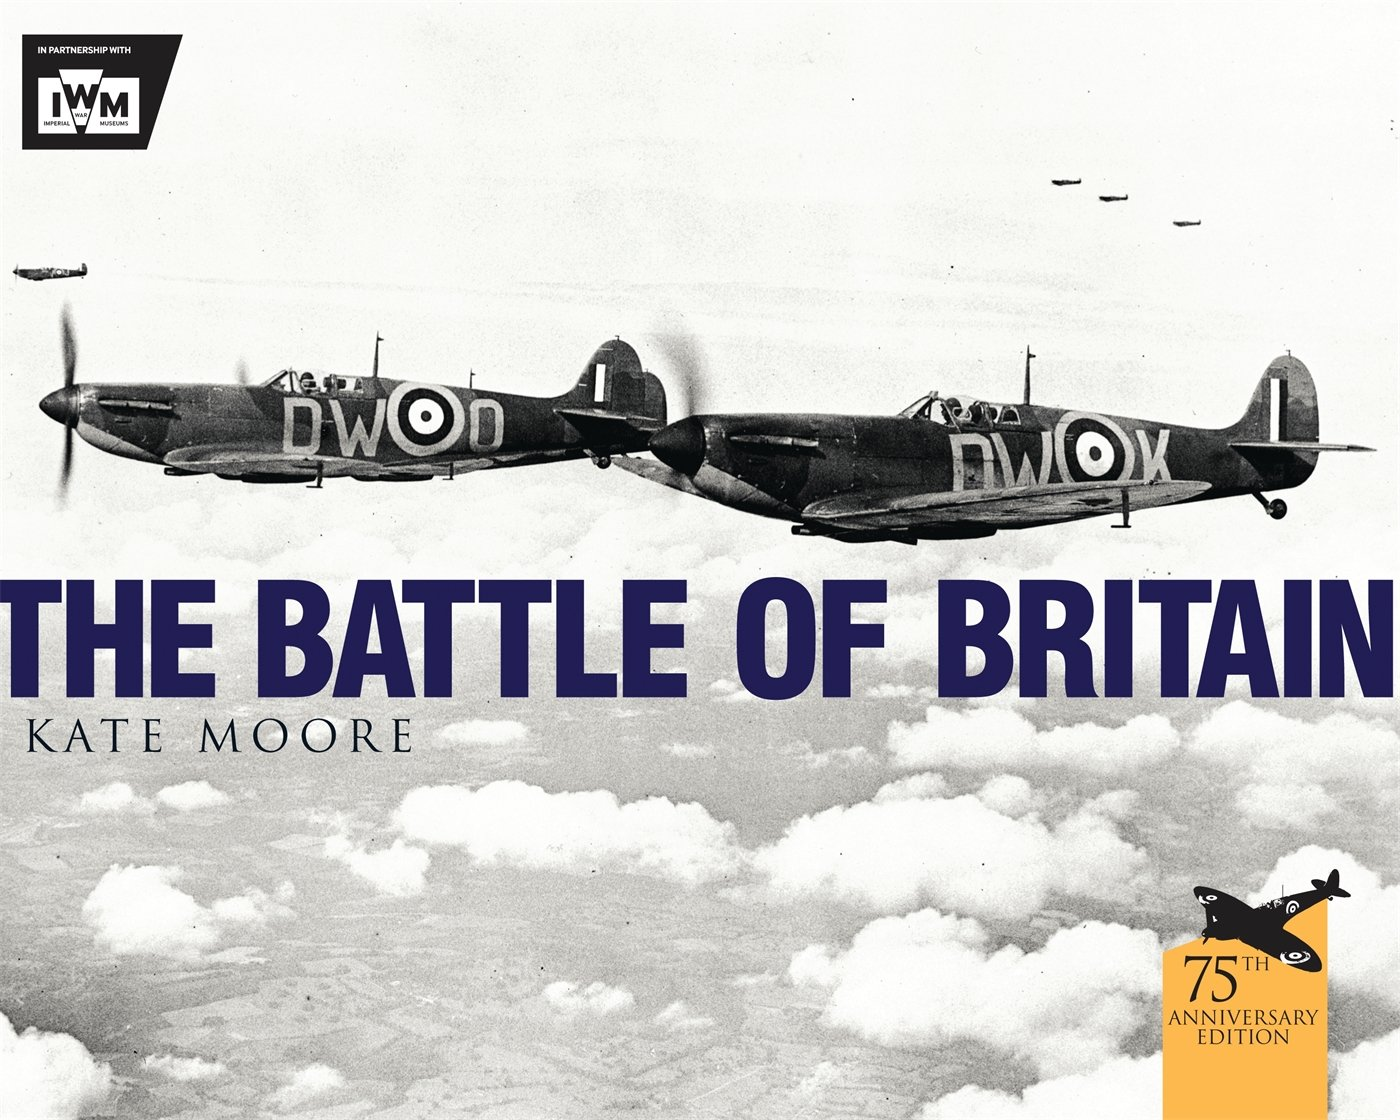 the battle of britain 2 essay The battle of britain essay  the battle of britain was the most important turning point in world war ii for the allied powers against the nazis and their axis powers - the battle of britain essay introduction.